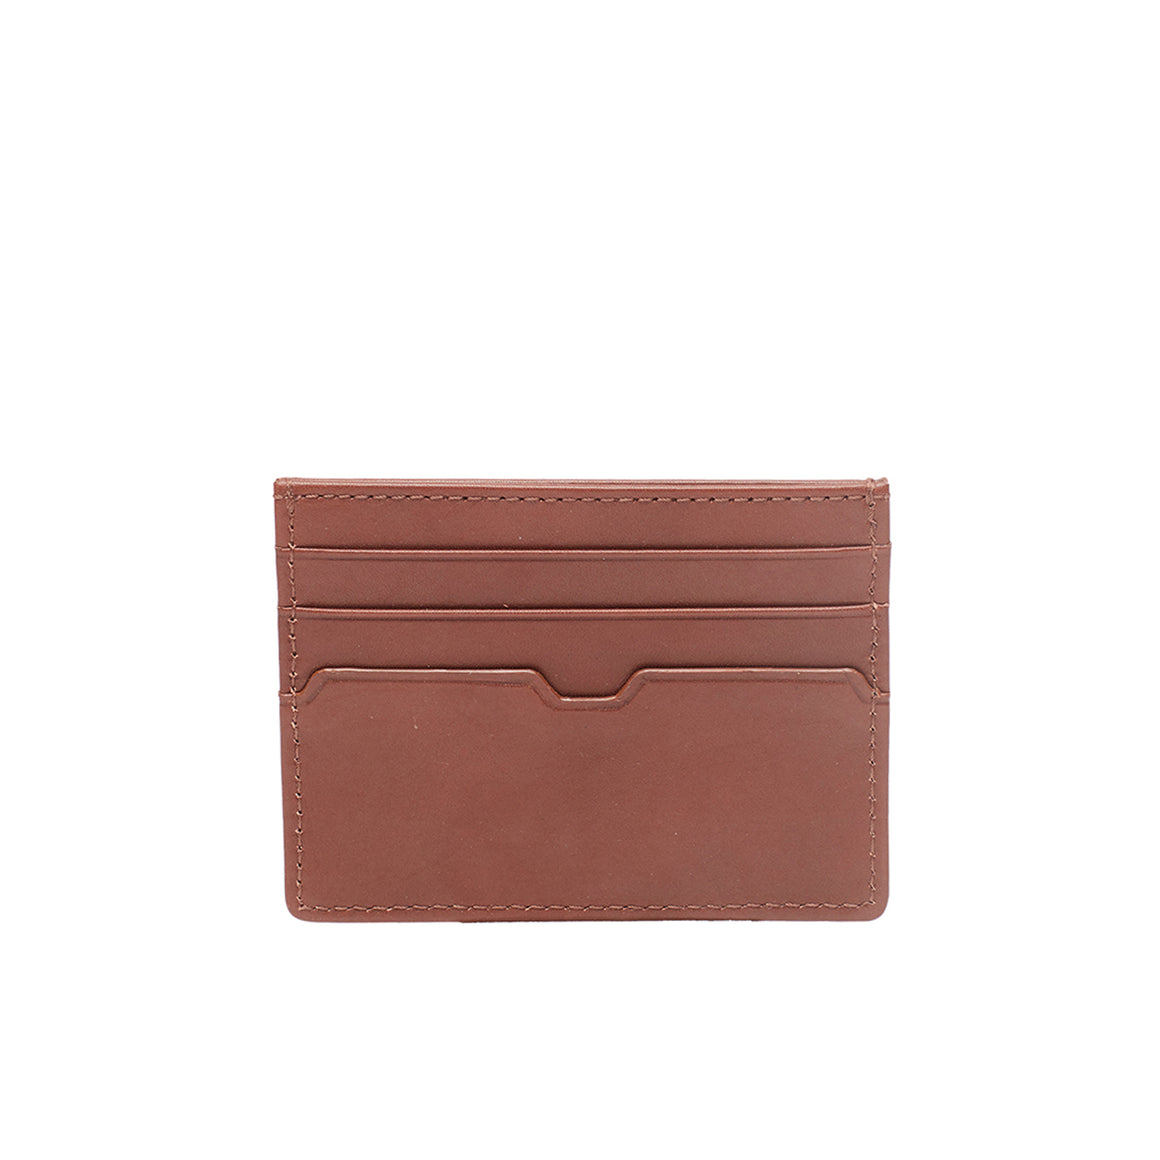 WT 0035 - TOHL ZELO MEN'S CARD HOLDER - VINTAGE TAN